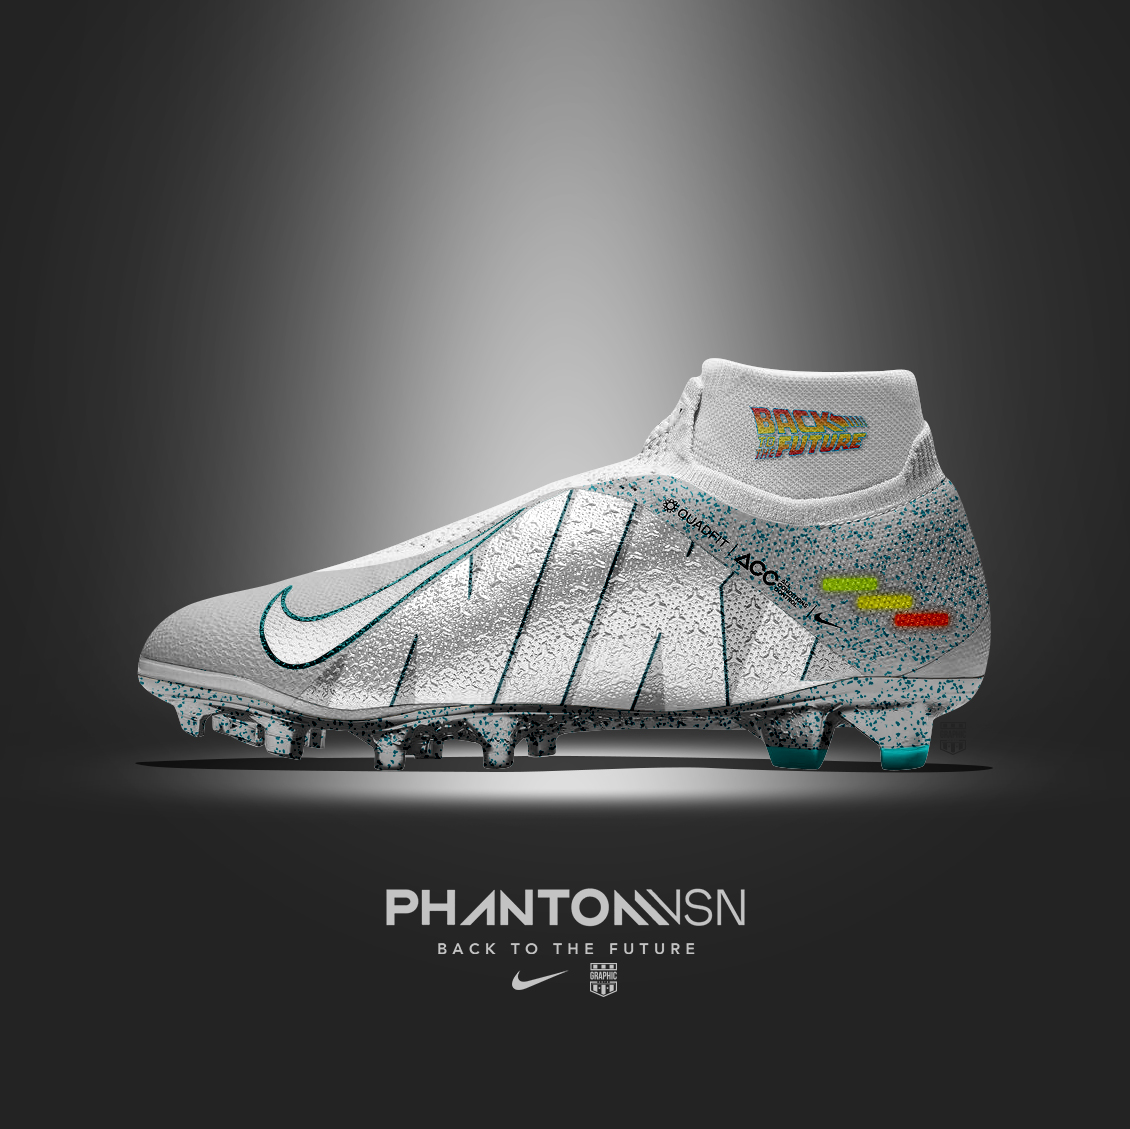 nike-phantom-vision-7eme-art-graphic-united-retour-vers-le-futur